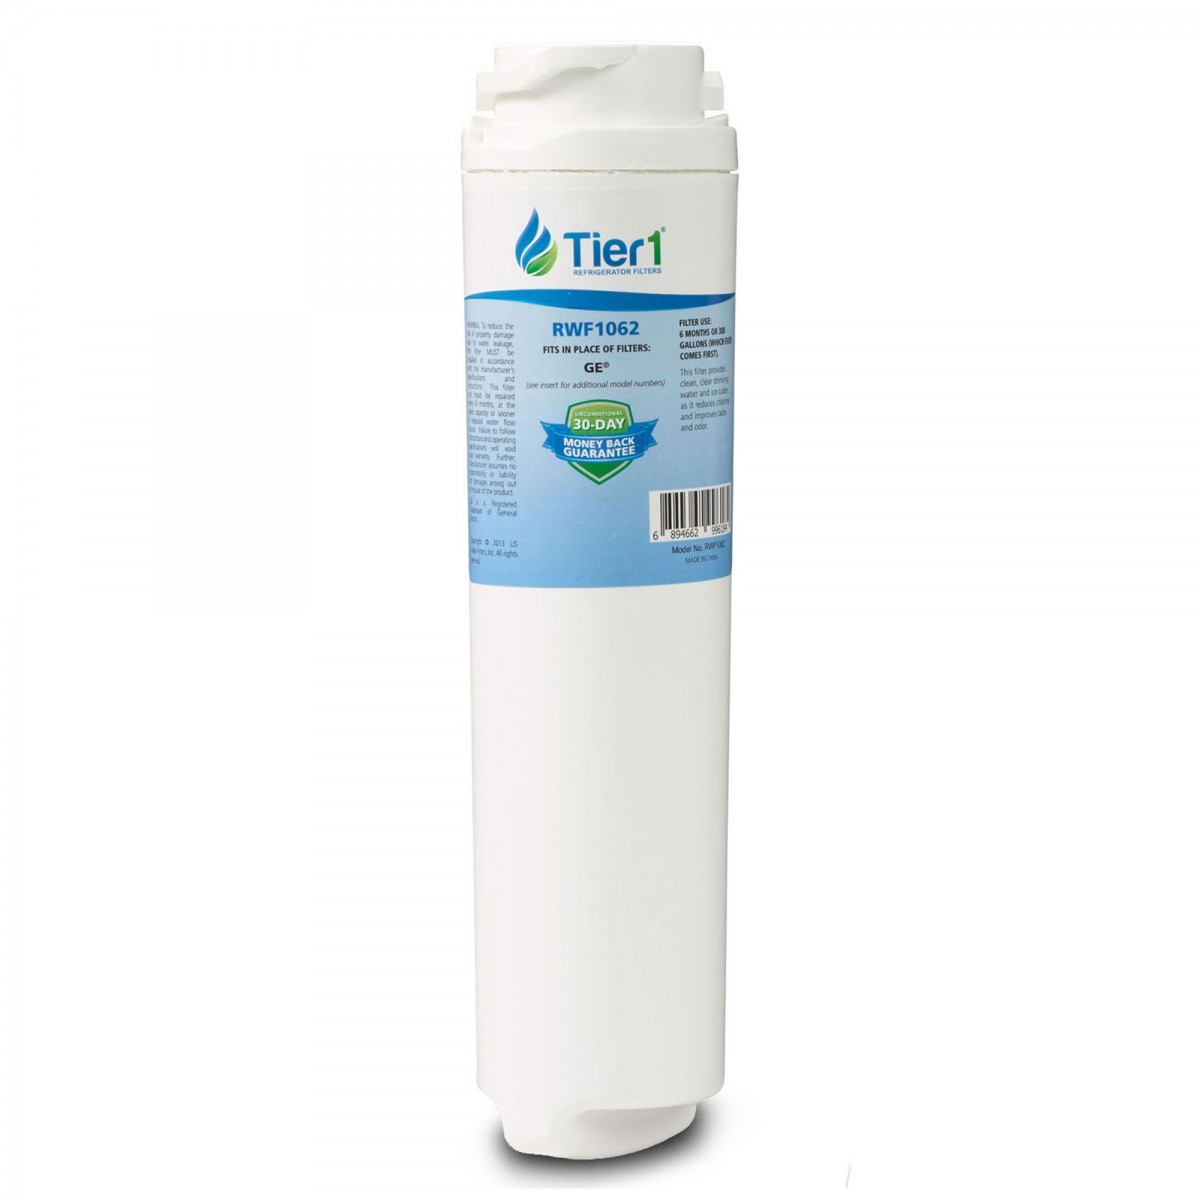 Mswf Ge Comparable Water Filter Replacement By Tier1